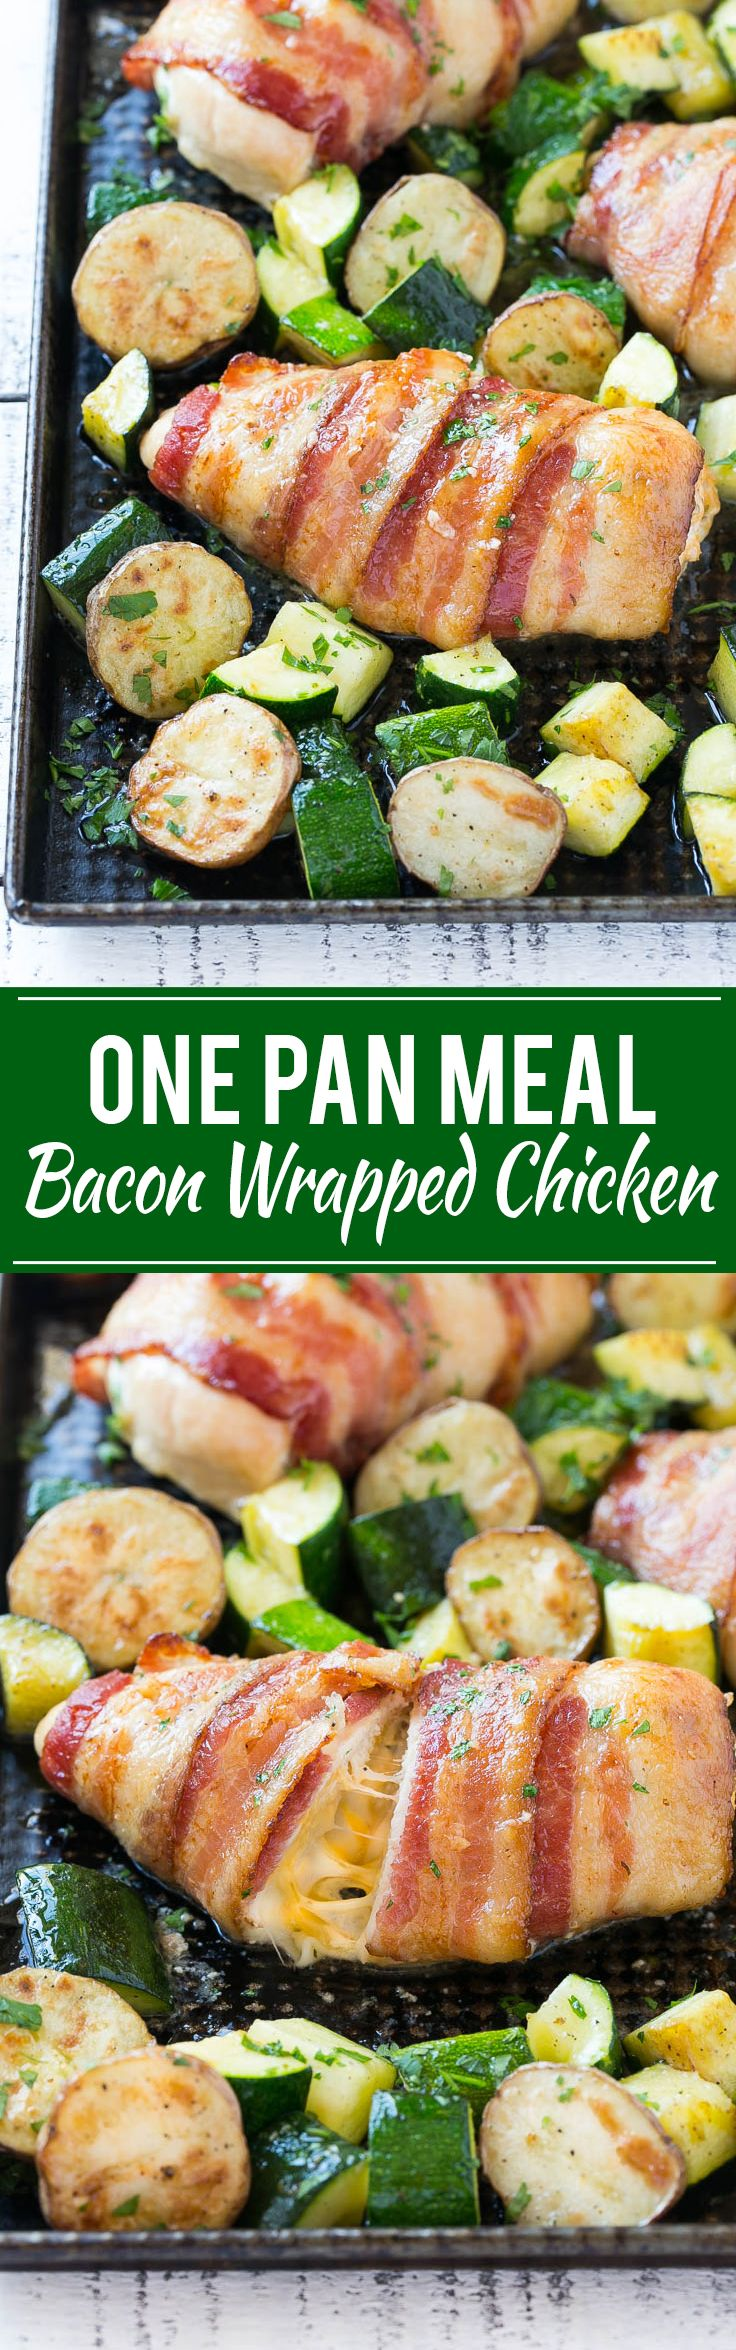 This recipe for bacon wrapped stuffed chicken breast with roasted potatoes and zucchini is a quick and easy one pan meal that's sure to please any crowd! The chicken is stuffed with a an incredible combination of three cheeses garlic and herbs.